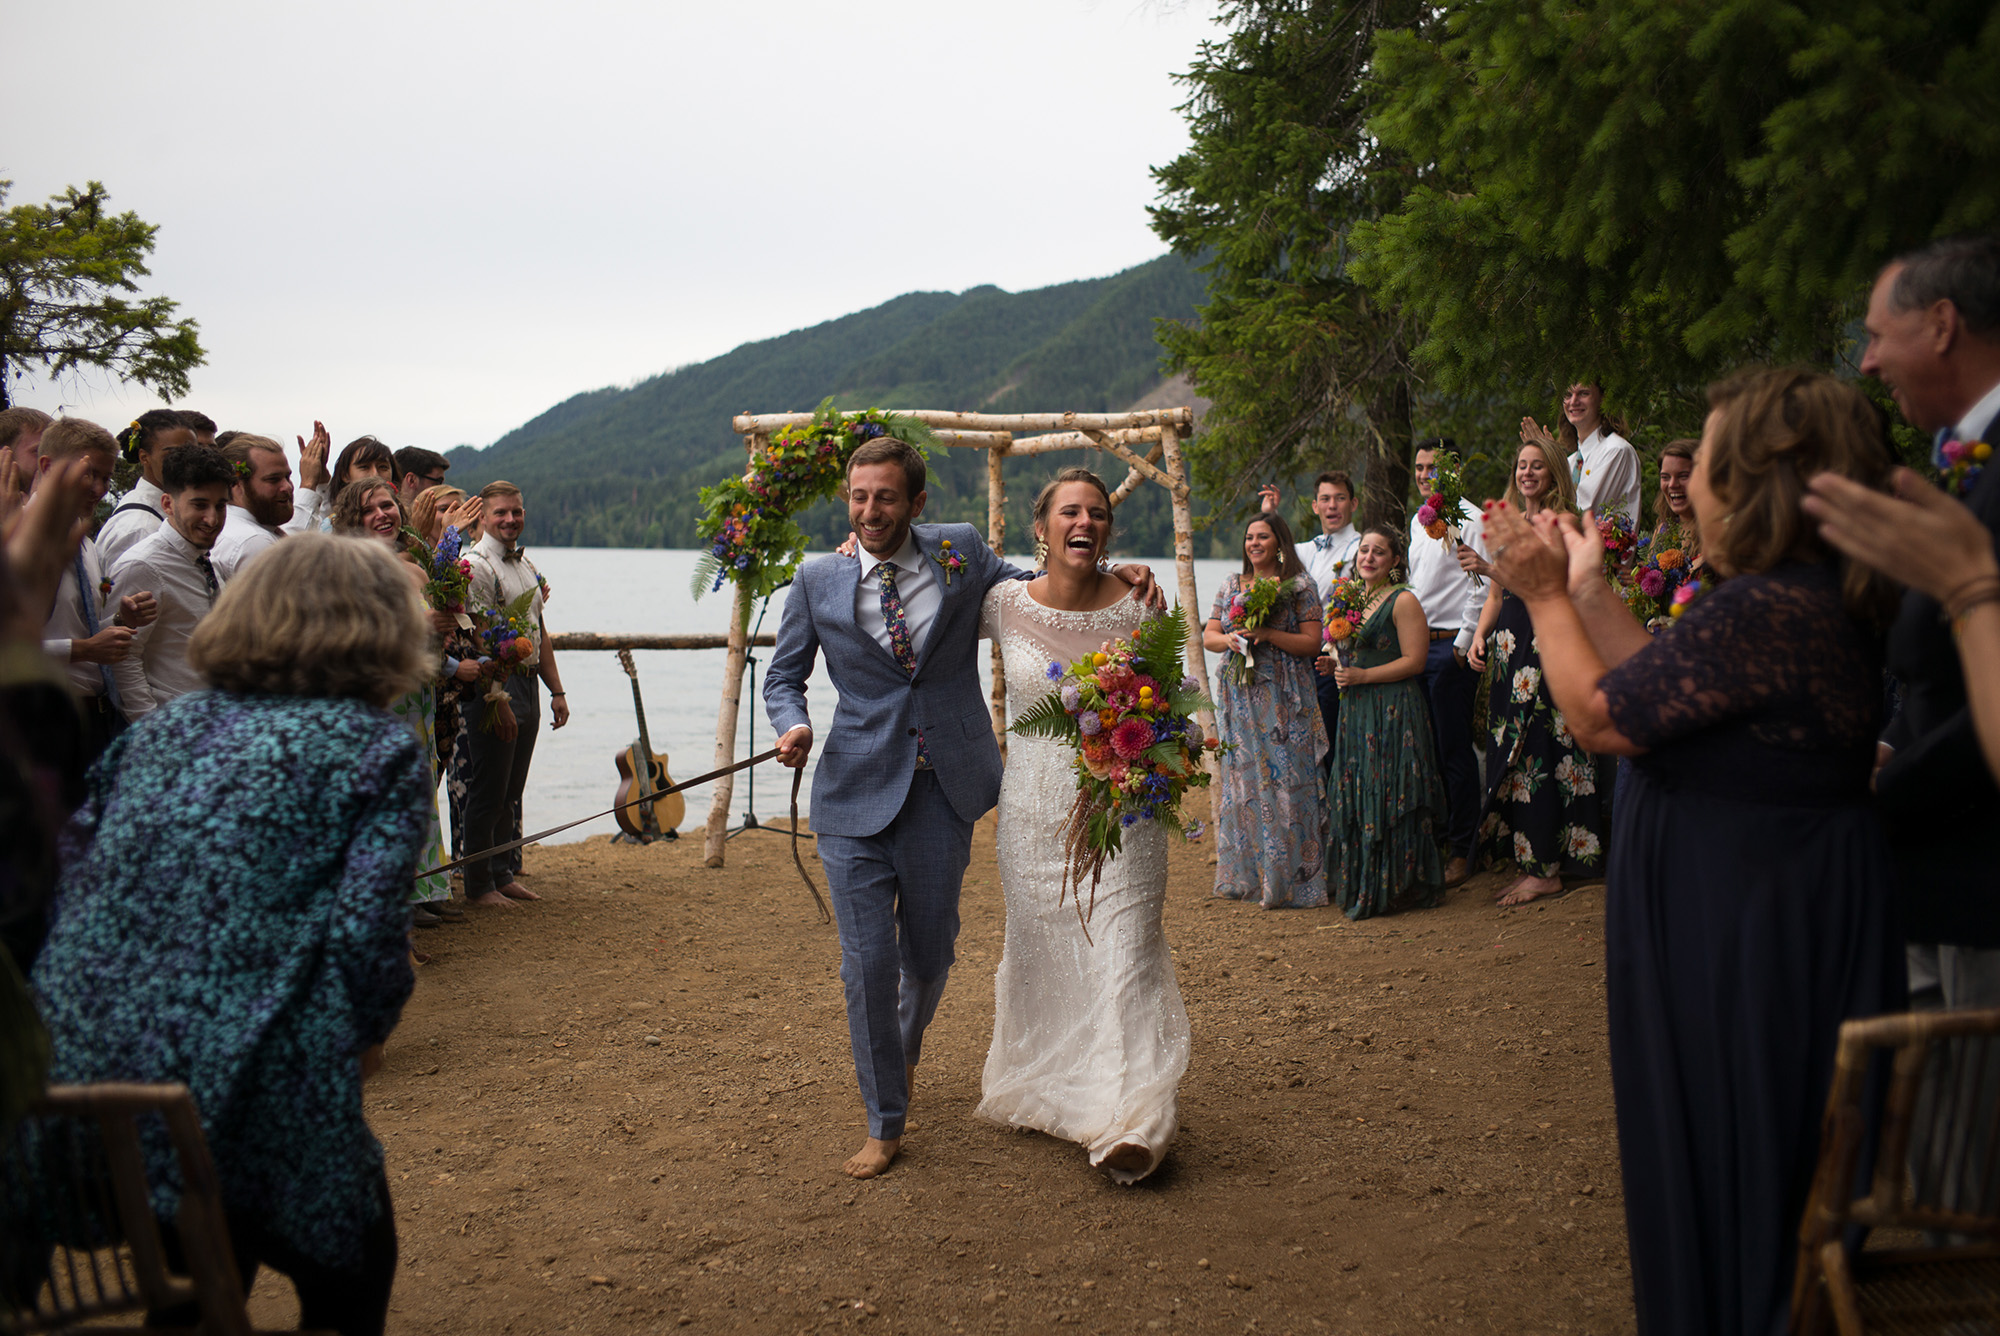 A wedding couple is walking down the aisle with their guests cheering next to them.